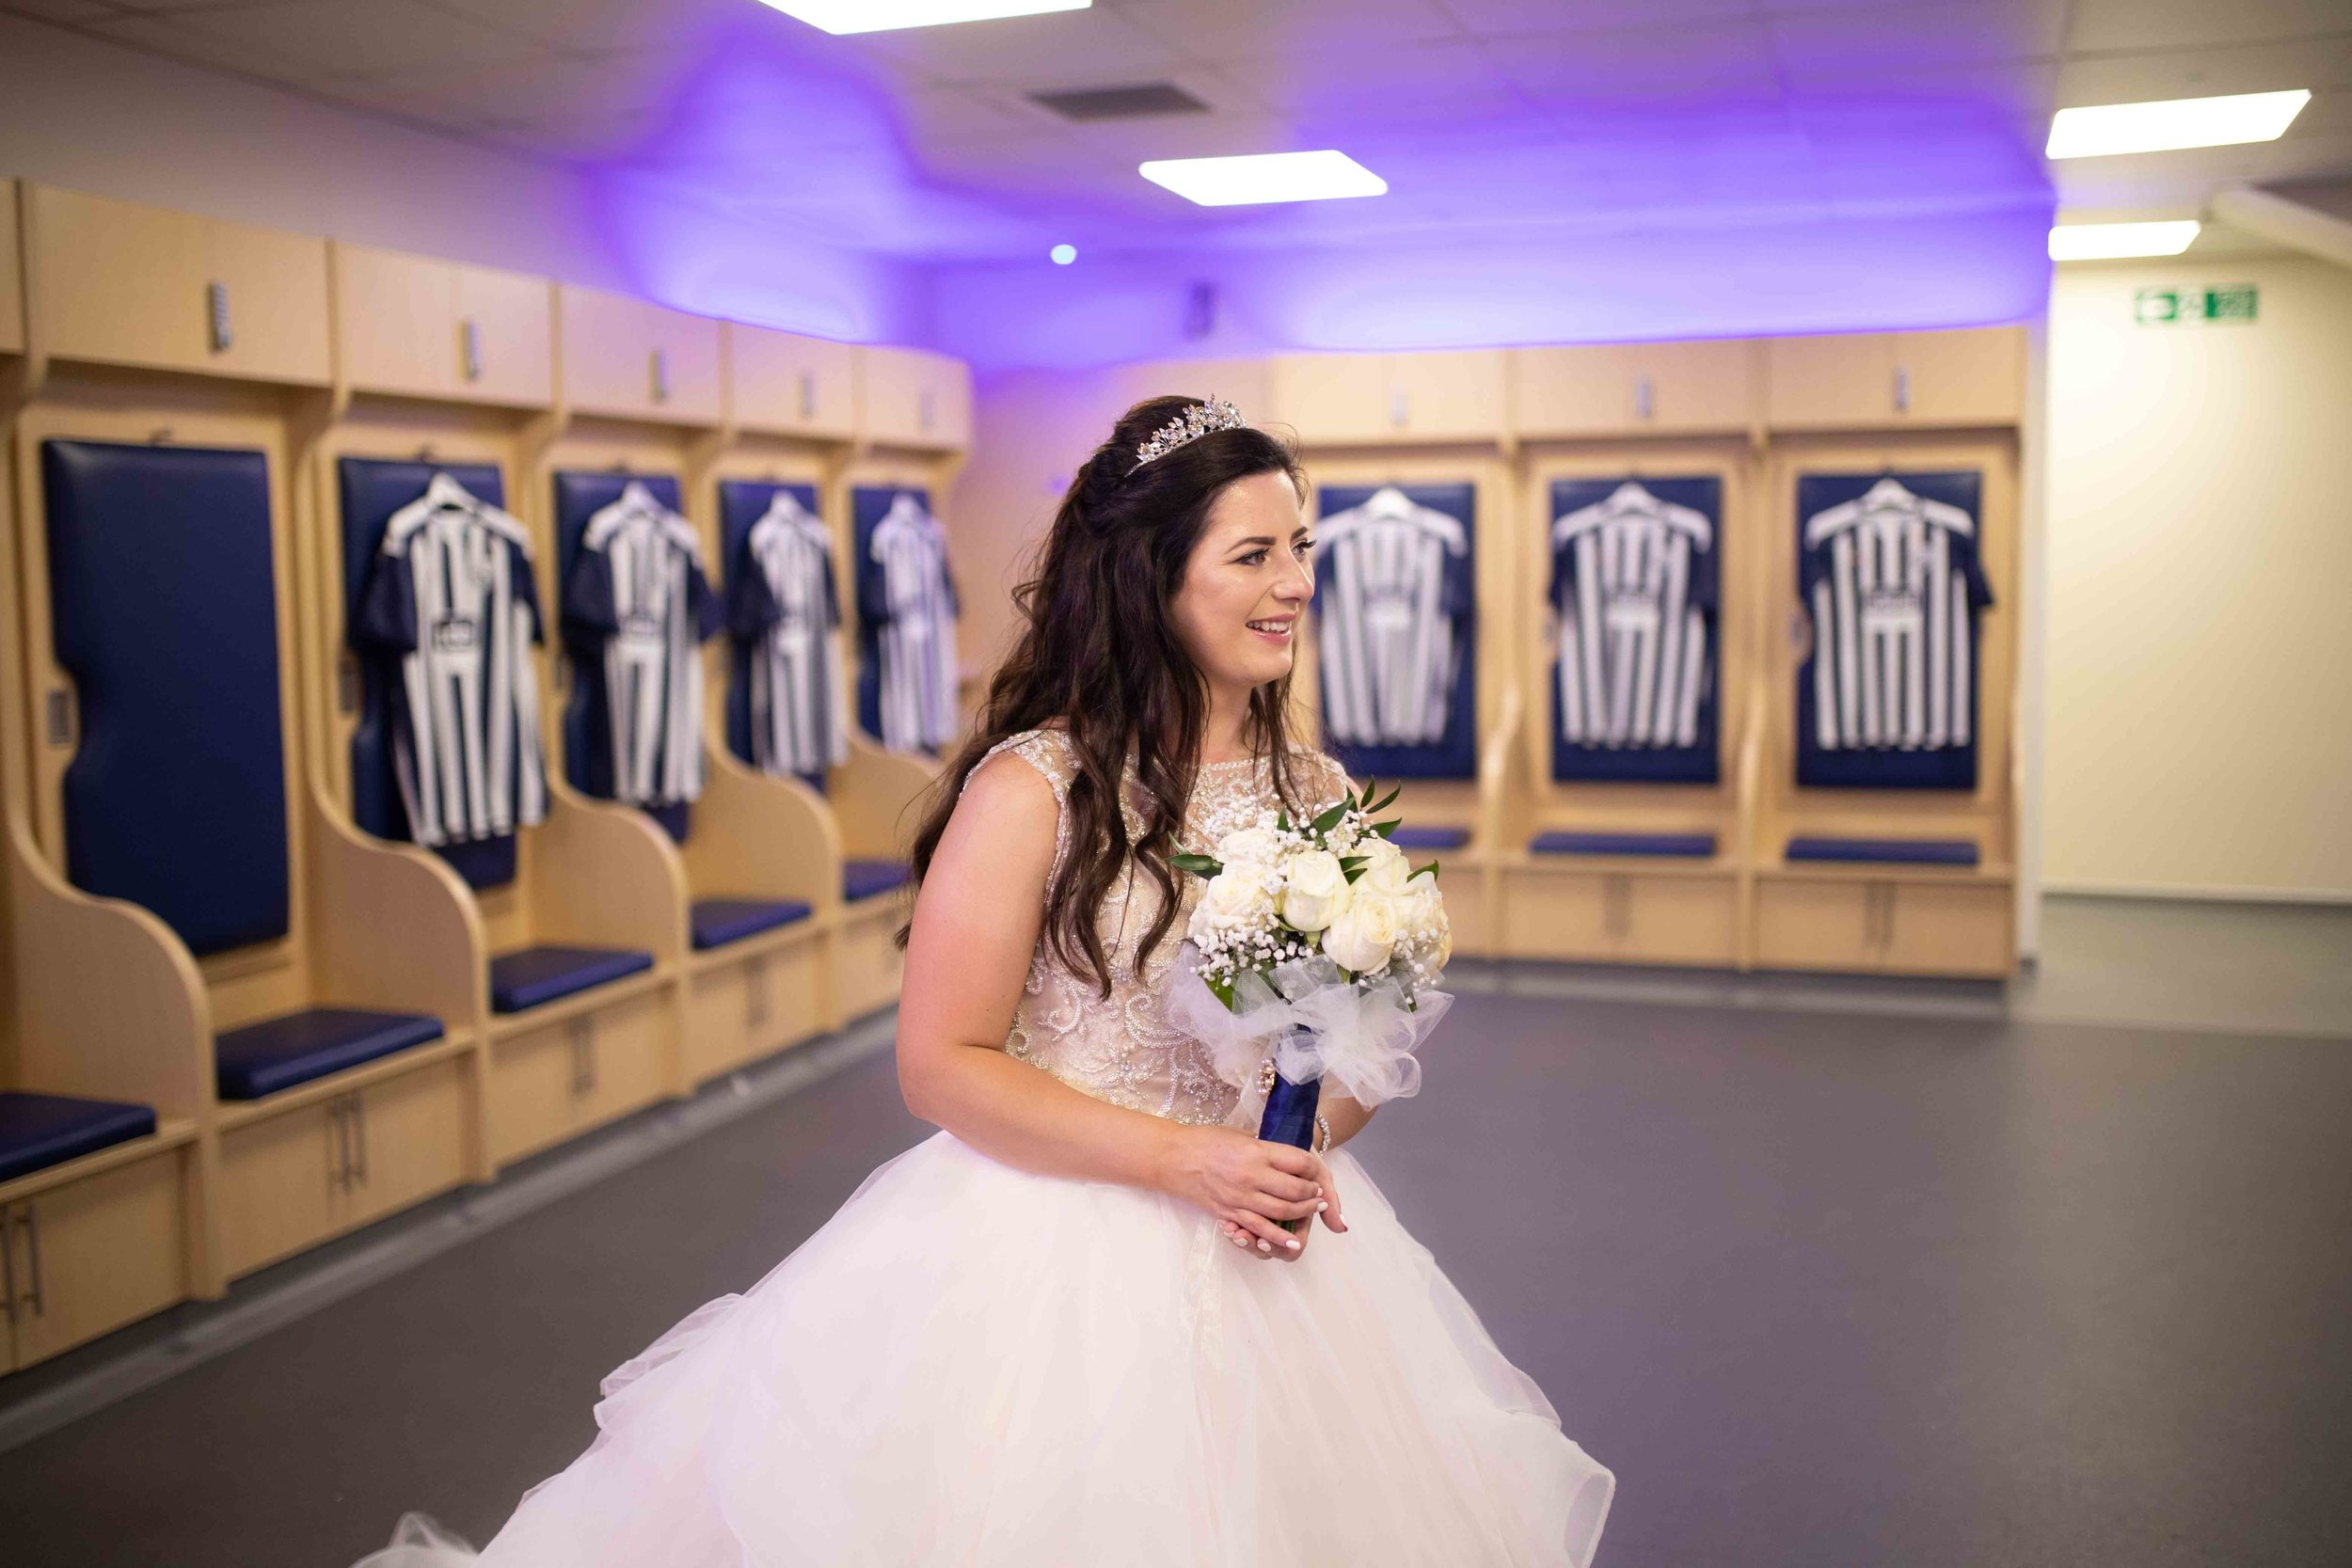 Lea-cooper-photography-wedding-photography-dudley-priory-west-bromwich-albion-football-club-wedding-WBAFC-willenhall-wolverhampton-west-midlands-uk-2.JPG